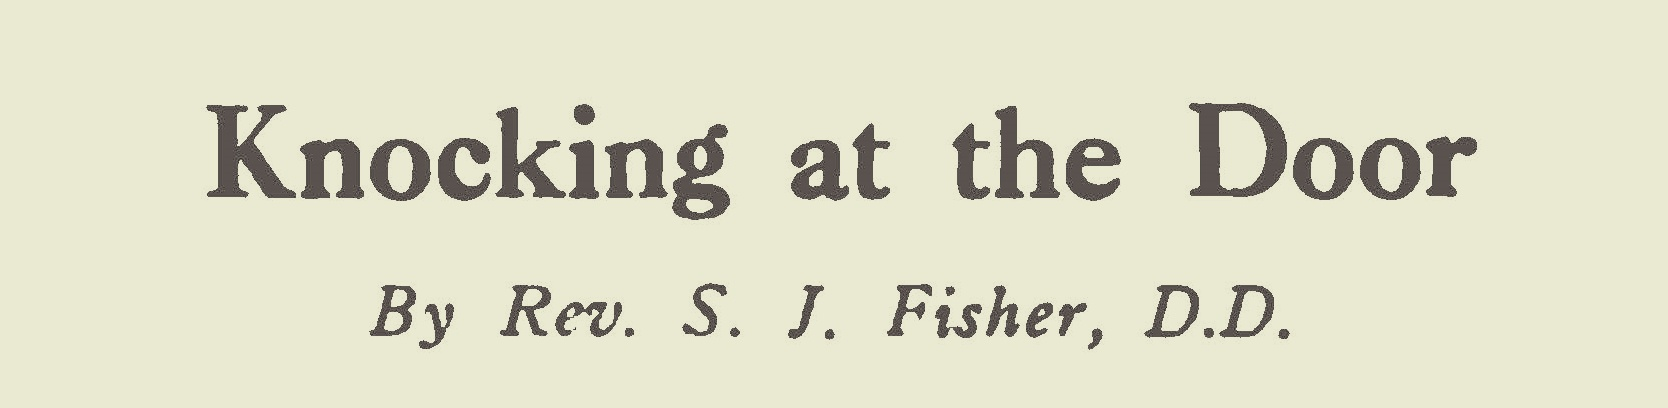 Fisher, Samuel Jackson, Knocking at the Door Title Page.jpg